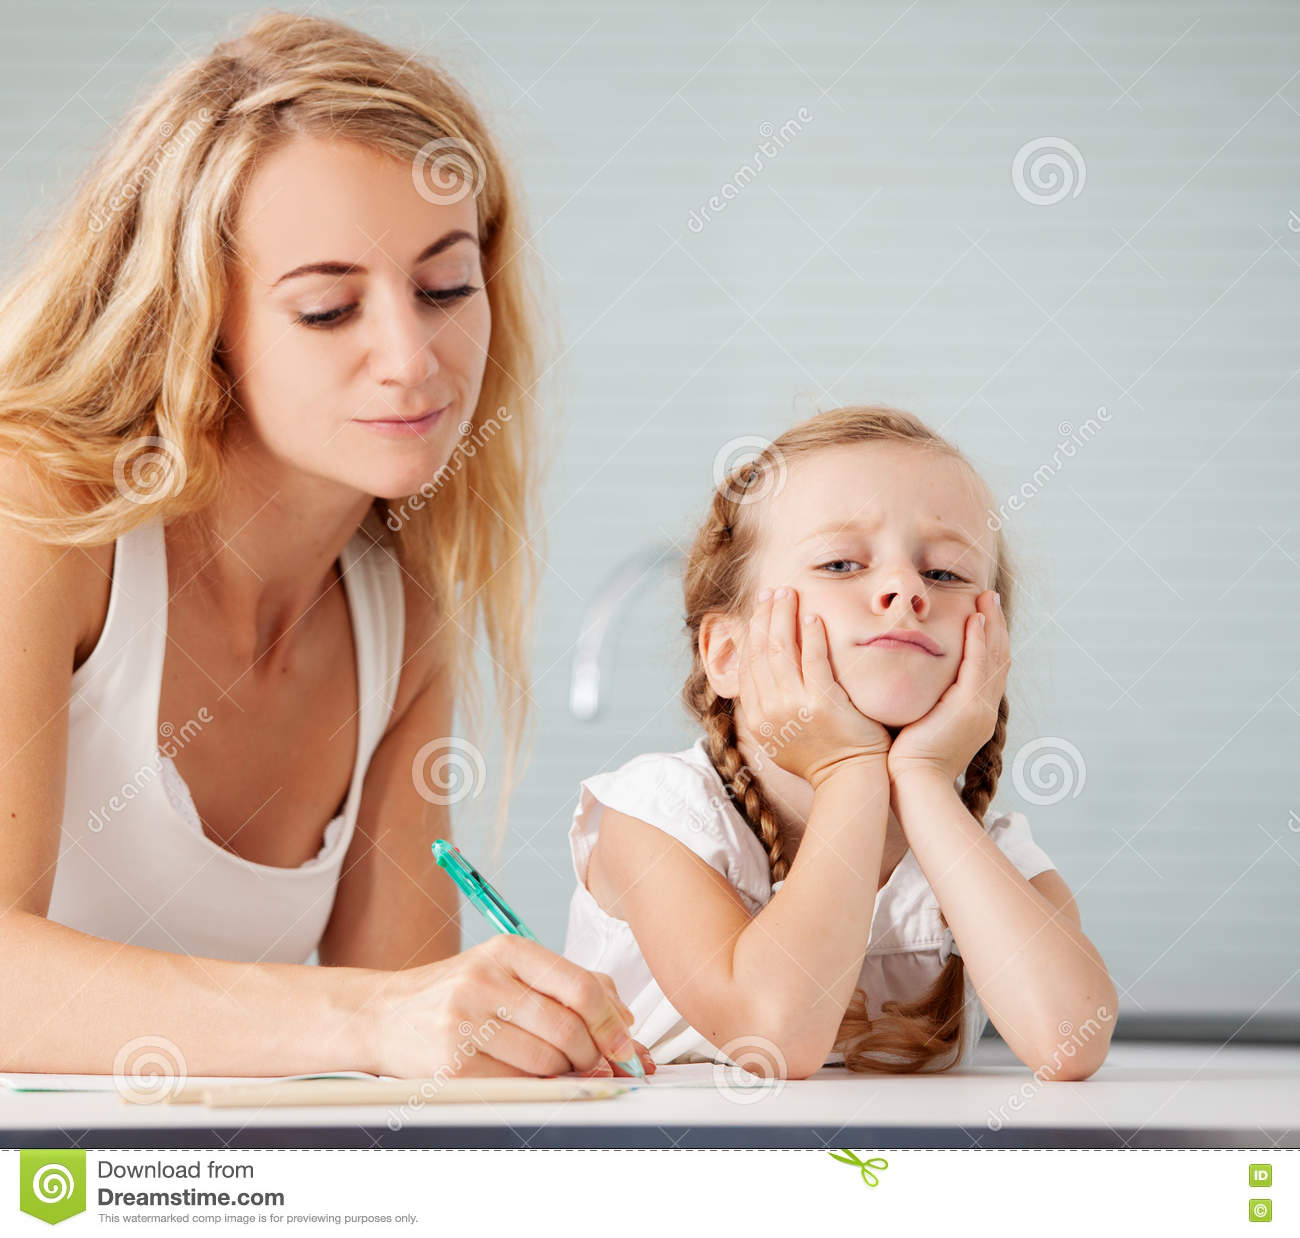 Parent Helps The Child To Do Homework Stock Photo - Image: 72163262